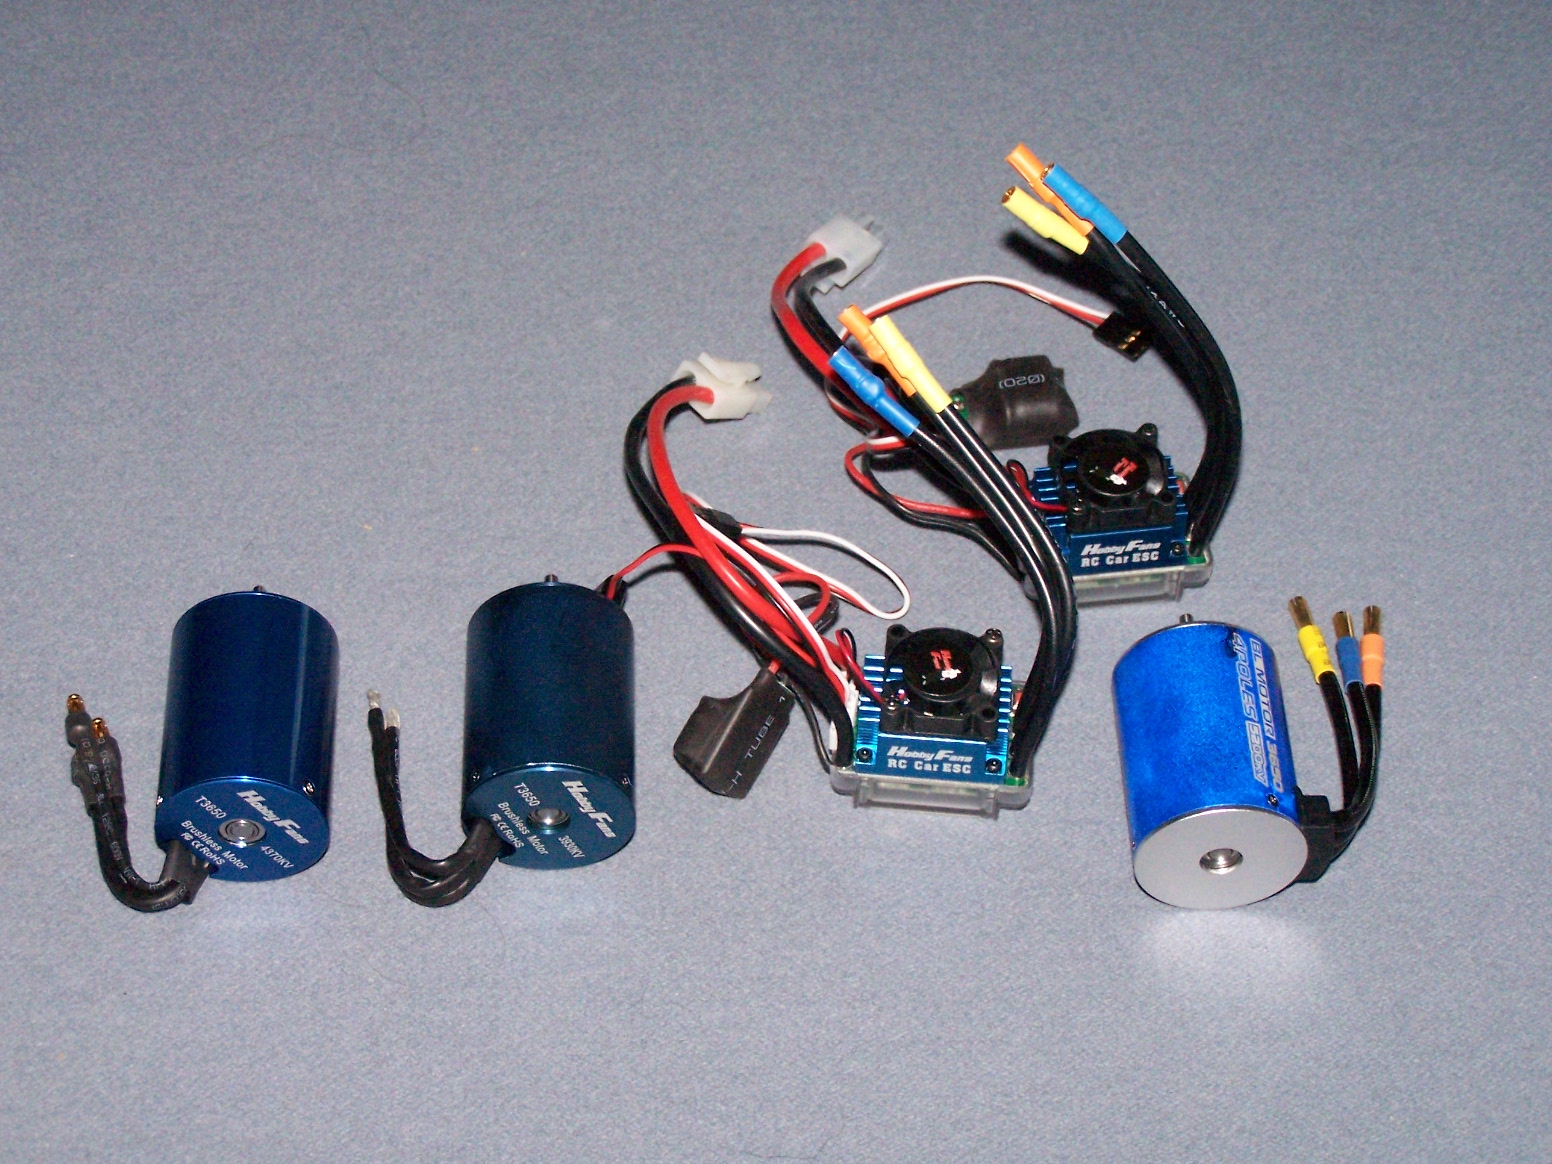 What's wrong with this motor/esc? Why is it so cheap? - Page 3 - RCU on brushless drill wiring-diagram, 4s lipo wiring-diagram, mystery brushless outrunner wiring-diagram, rc heli wiring-diagram, hobbywing esc wiring-diagram,